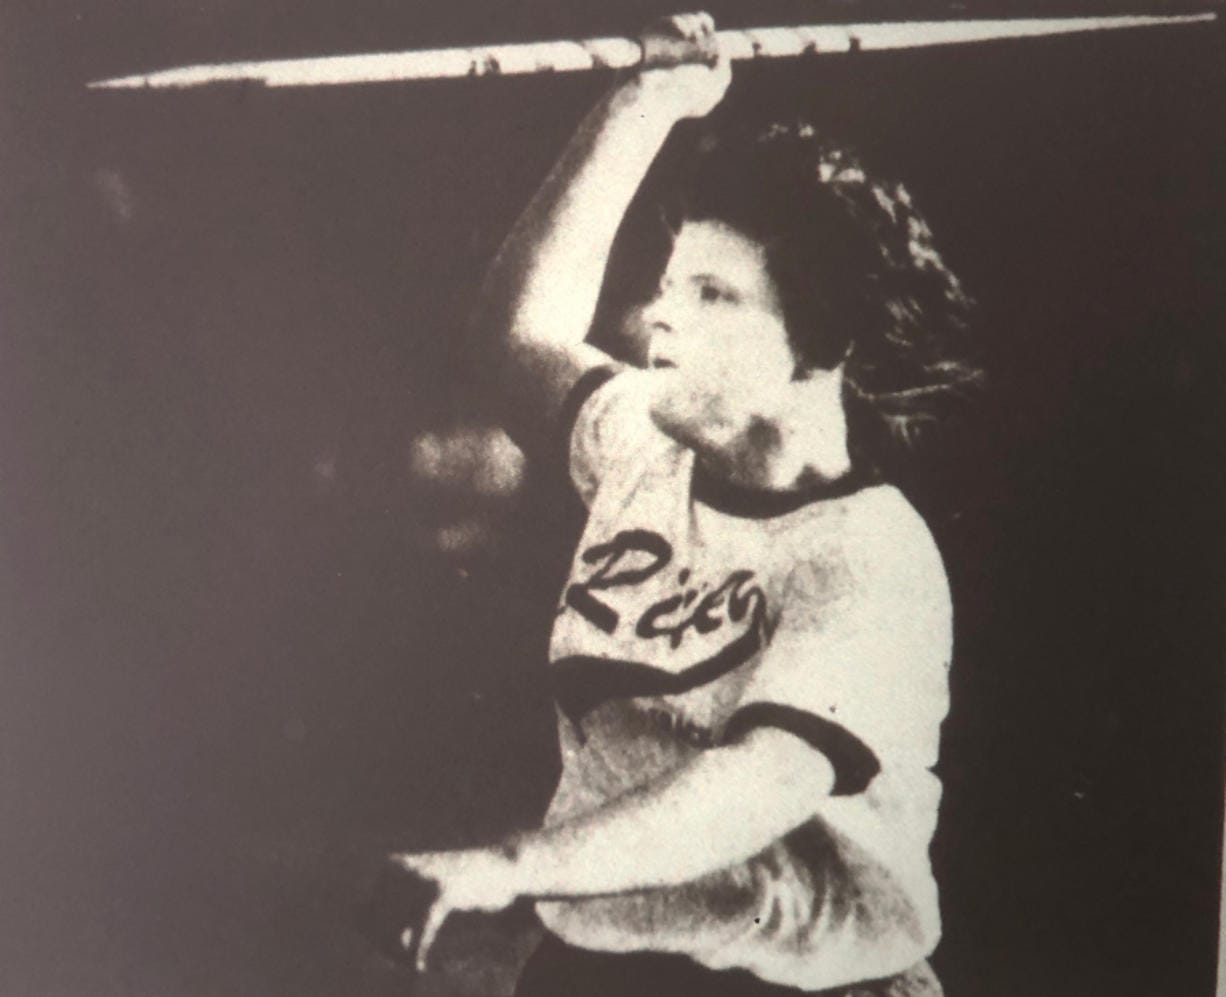 Columbia River's Tracey McCarthey capped off her amazing prep career with her third state javelin title on May 27, 1983.